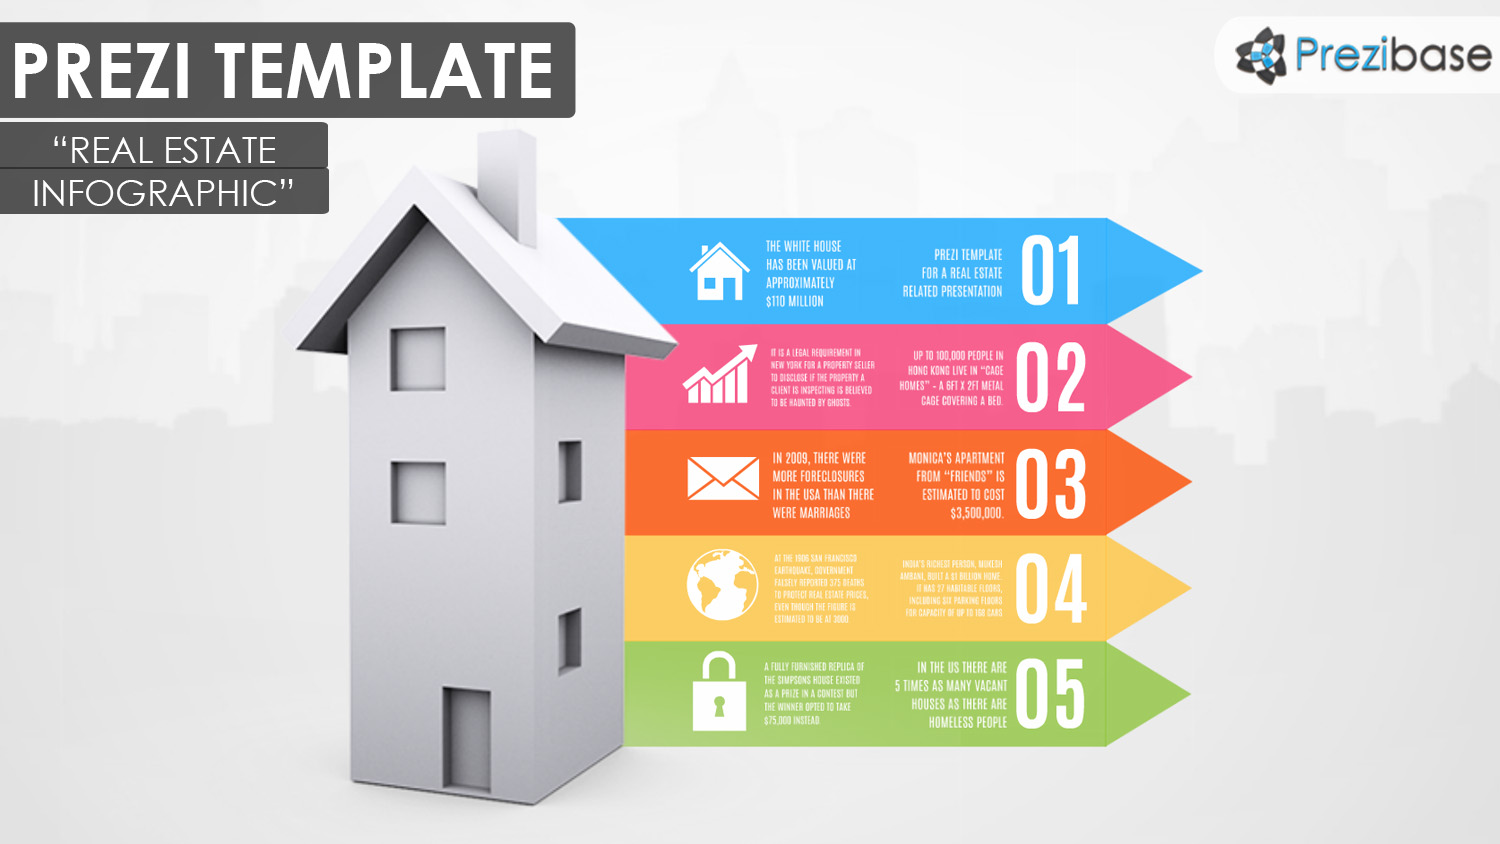 3D real estate and house infographic property prezi template